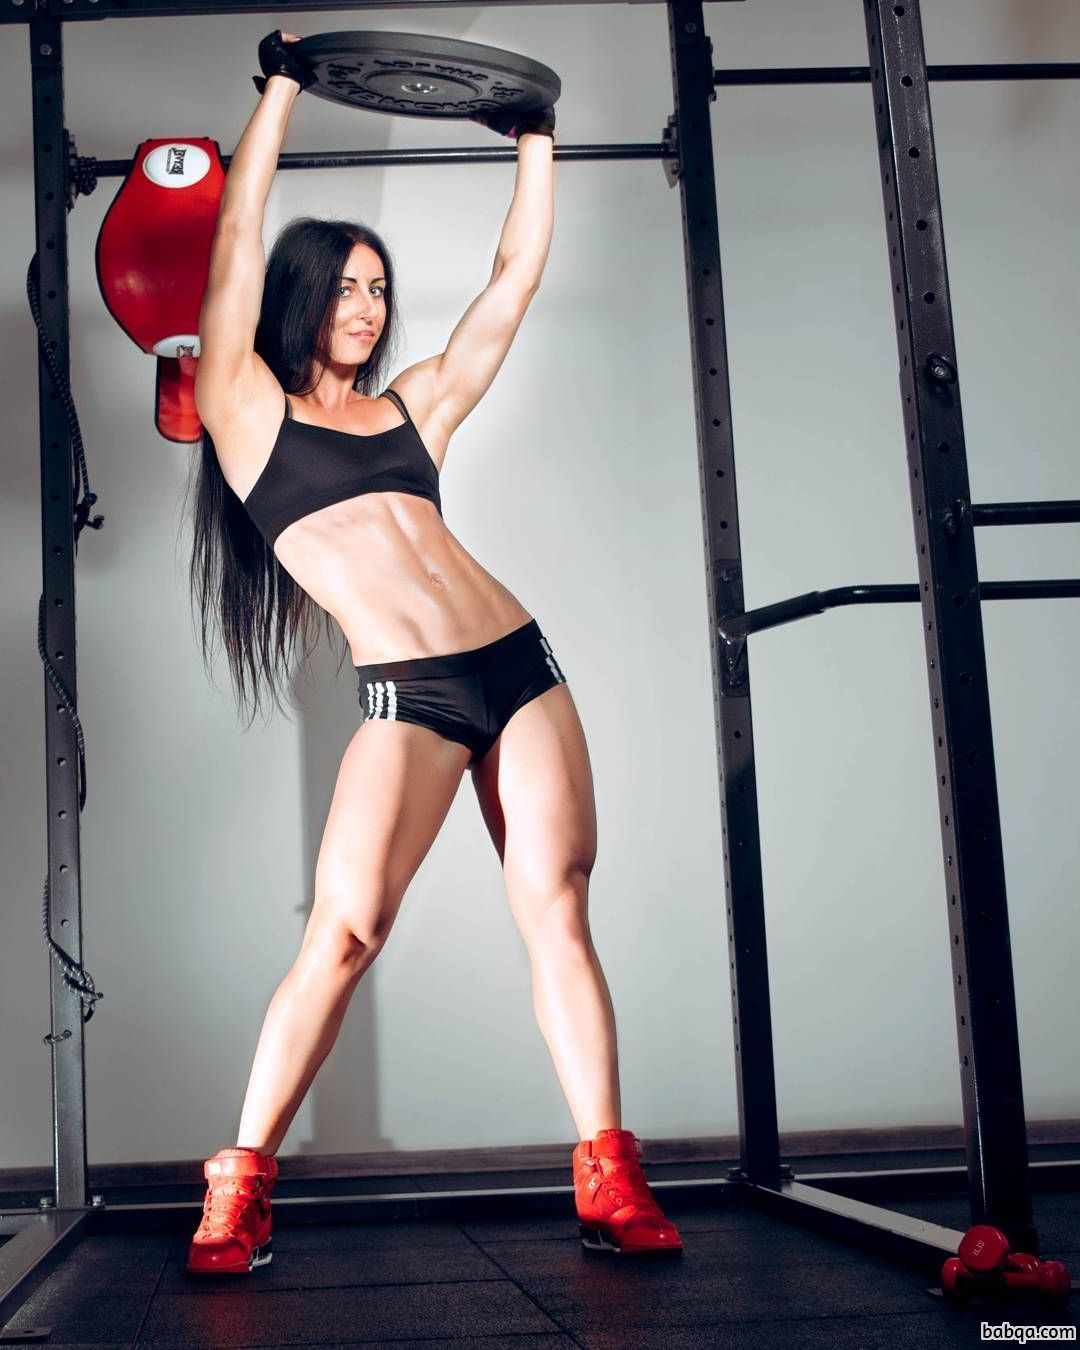 hot woman with muscular body and muscle legs picture from g+